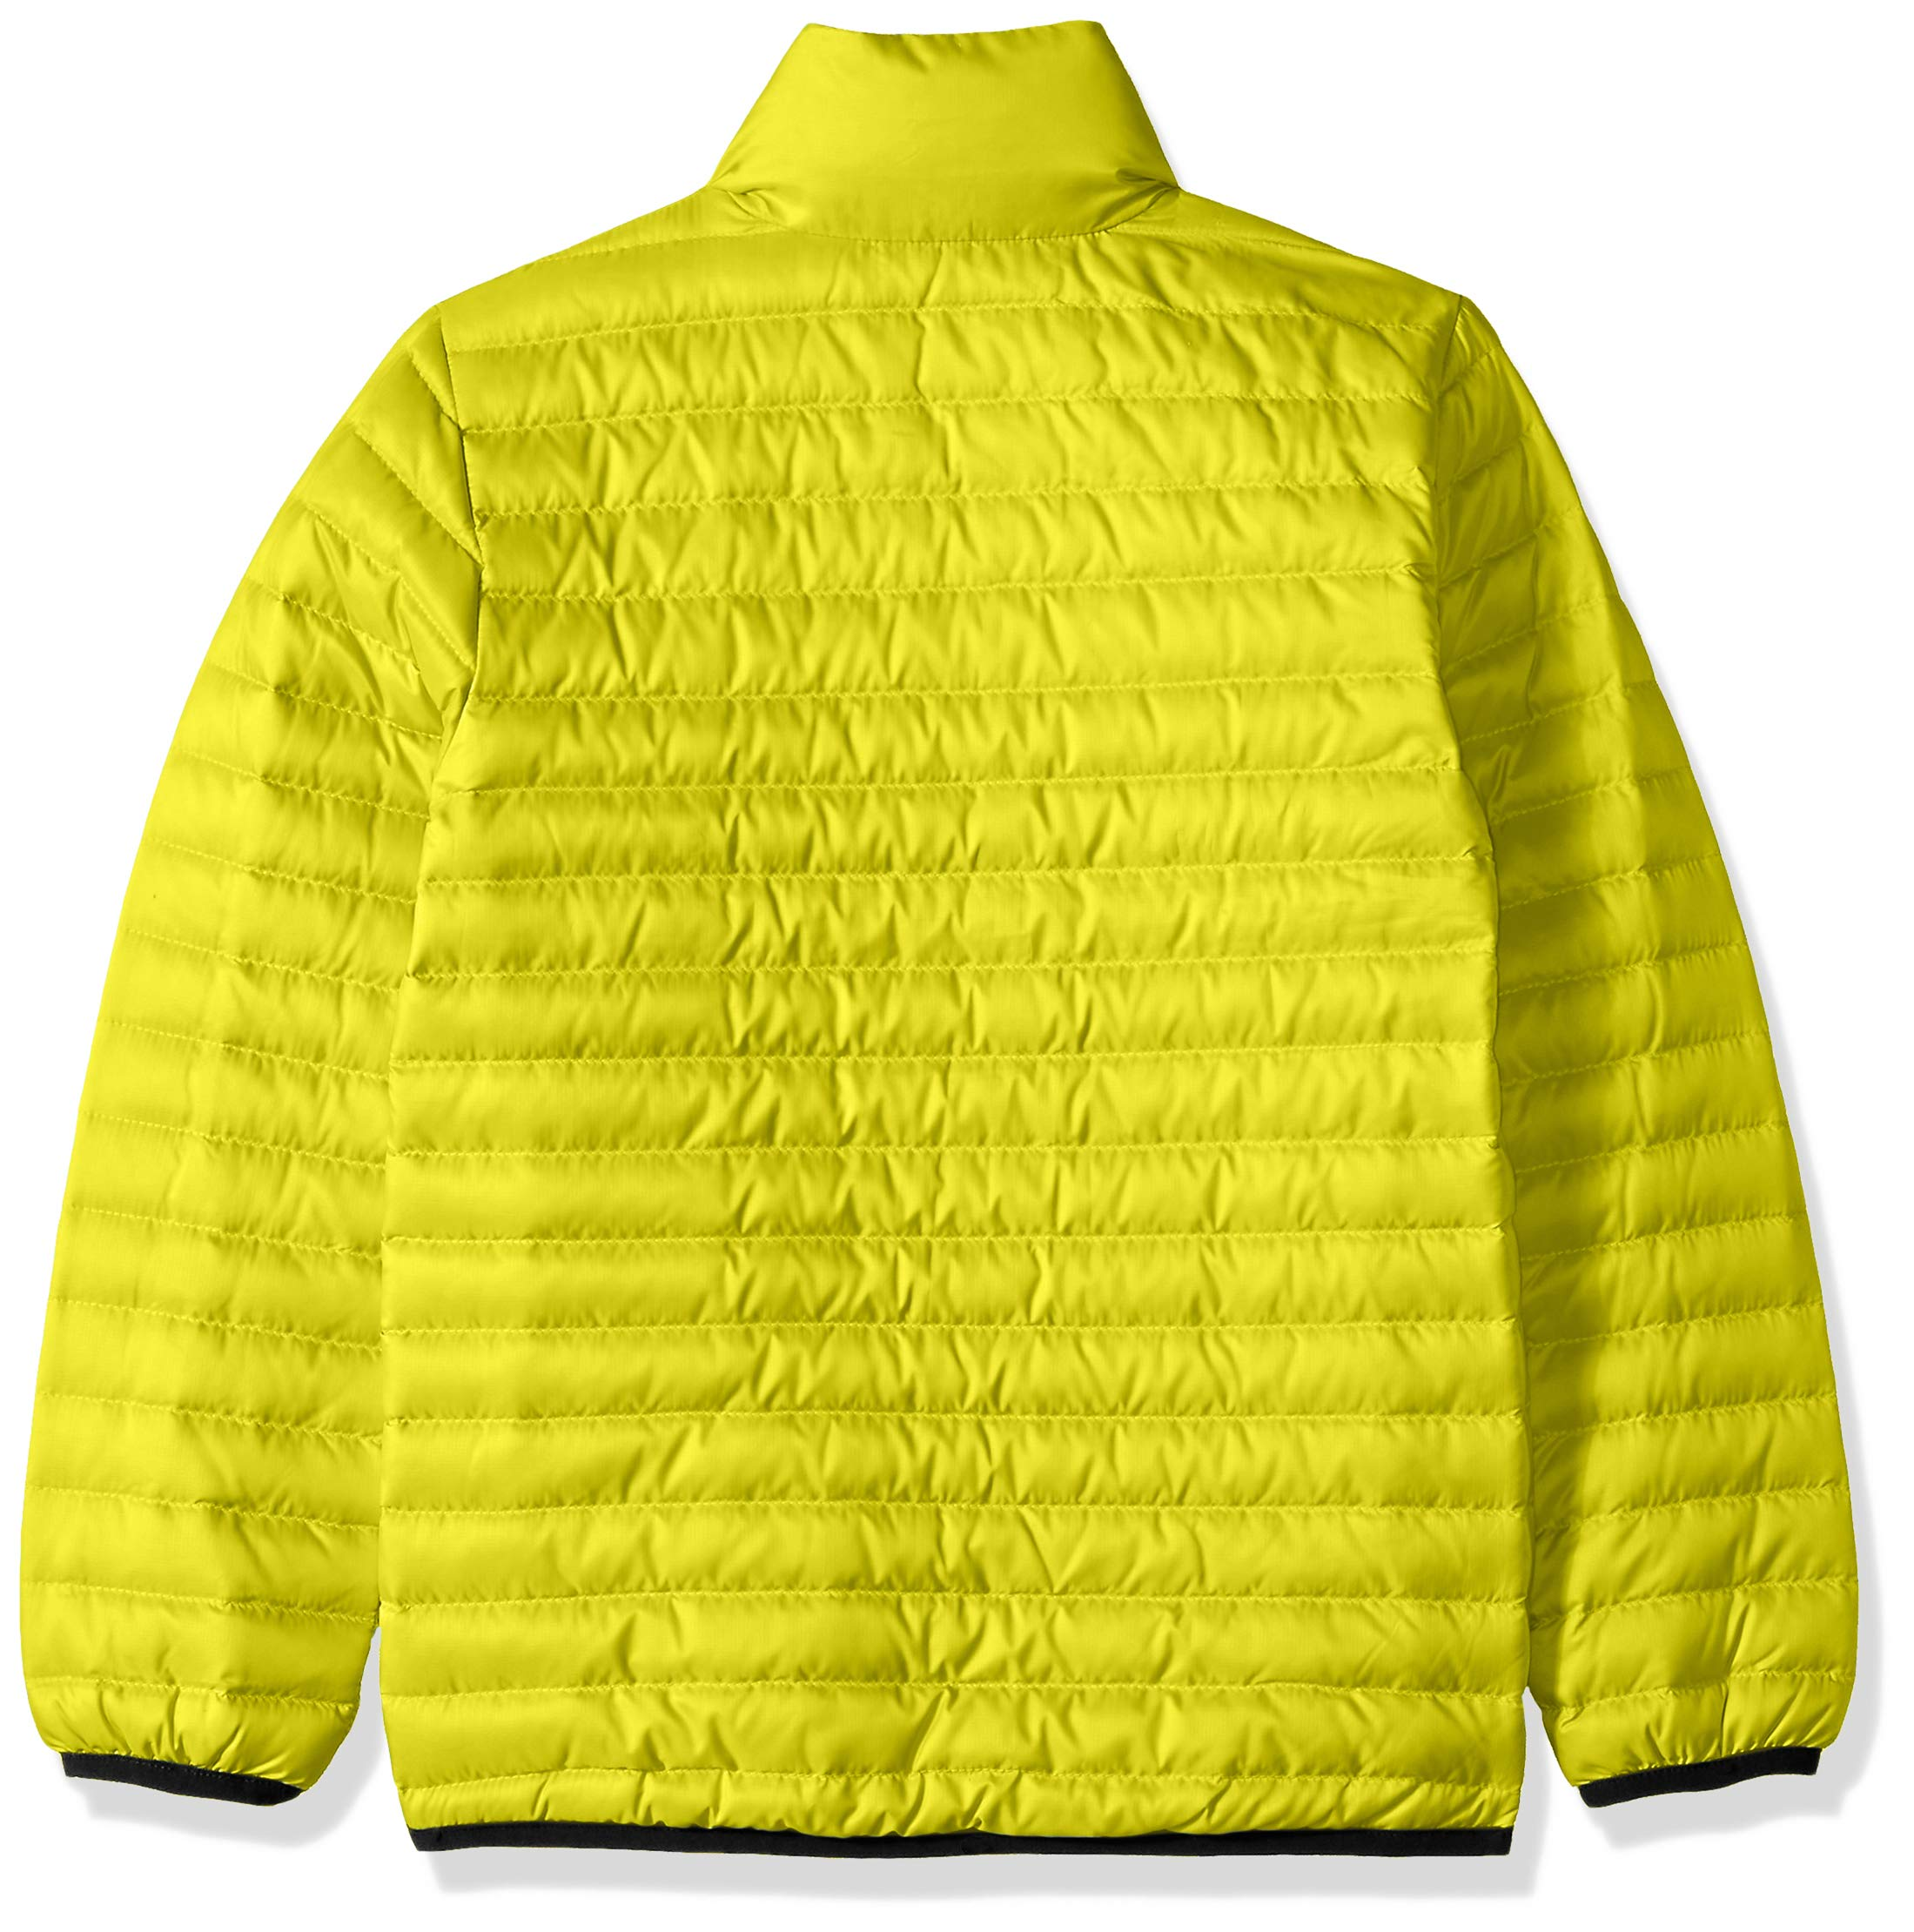 Helly Hansen Jr Barrier Down Insulator Jacket, Sweet Lime, Size 10 by Helly Hansen (Image #2)